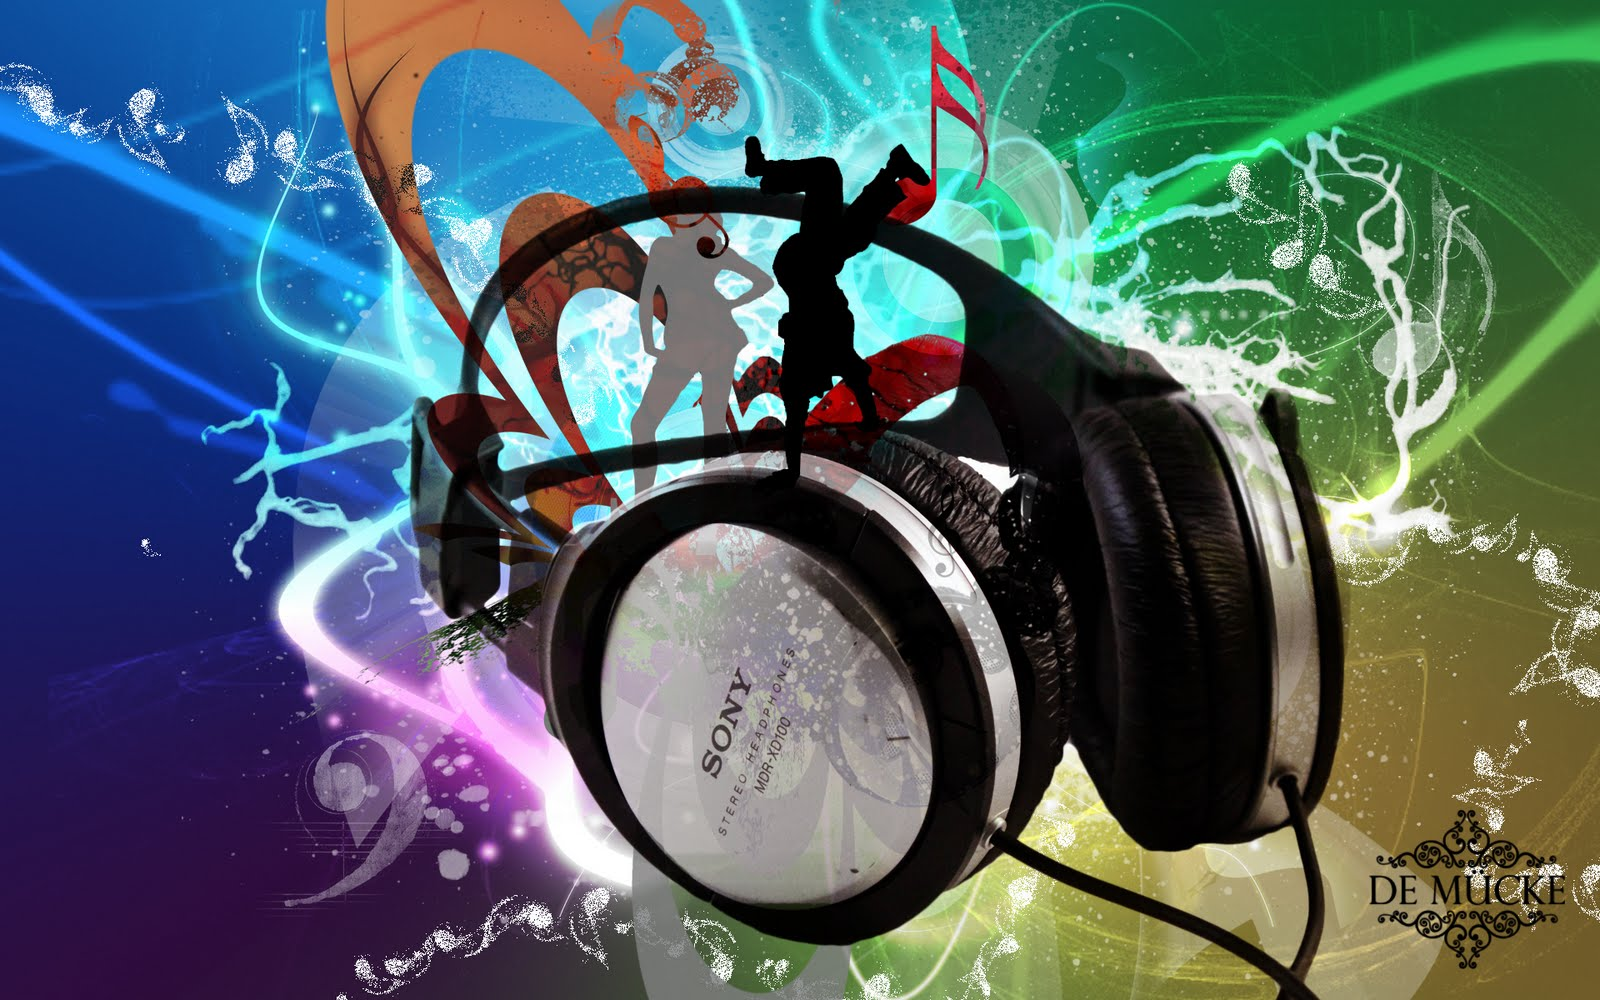 Good Wallpaper Music Headphone - Music-gavin-and-randys-music-taste-25307620-1600-1000  Pic_23387.jpg